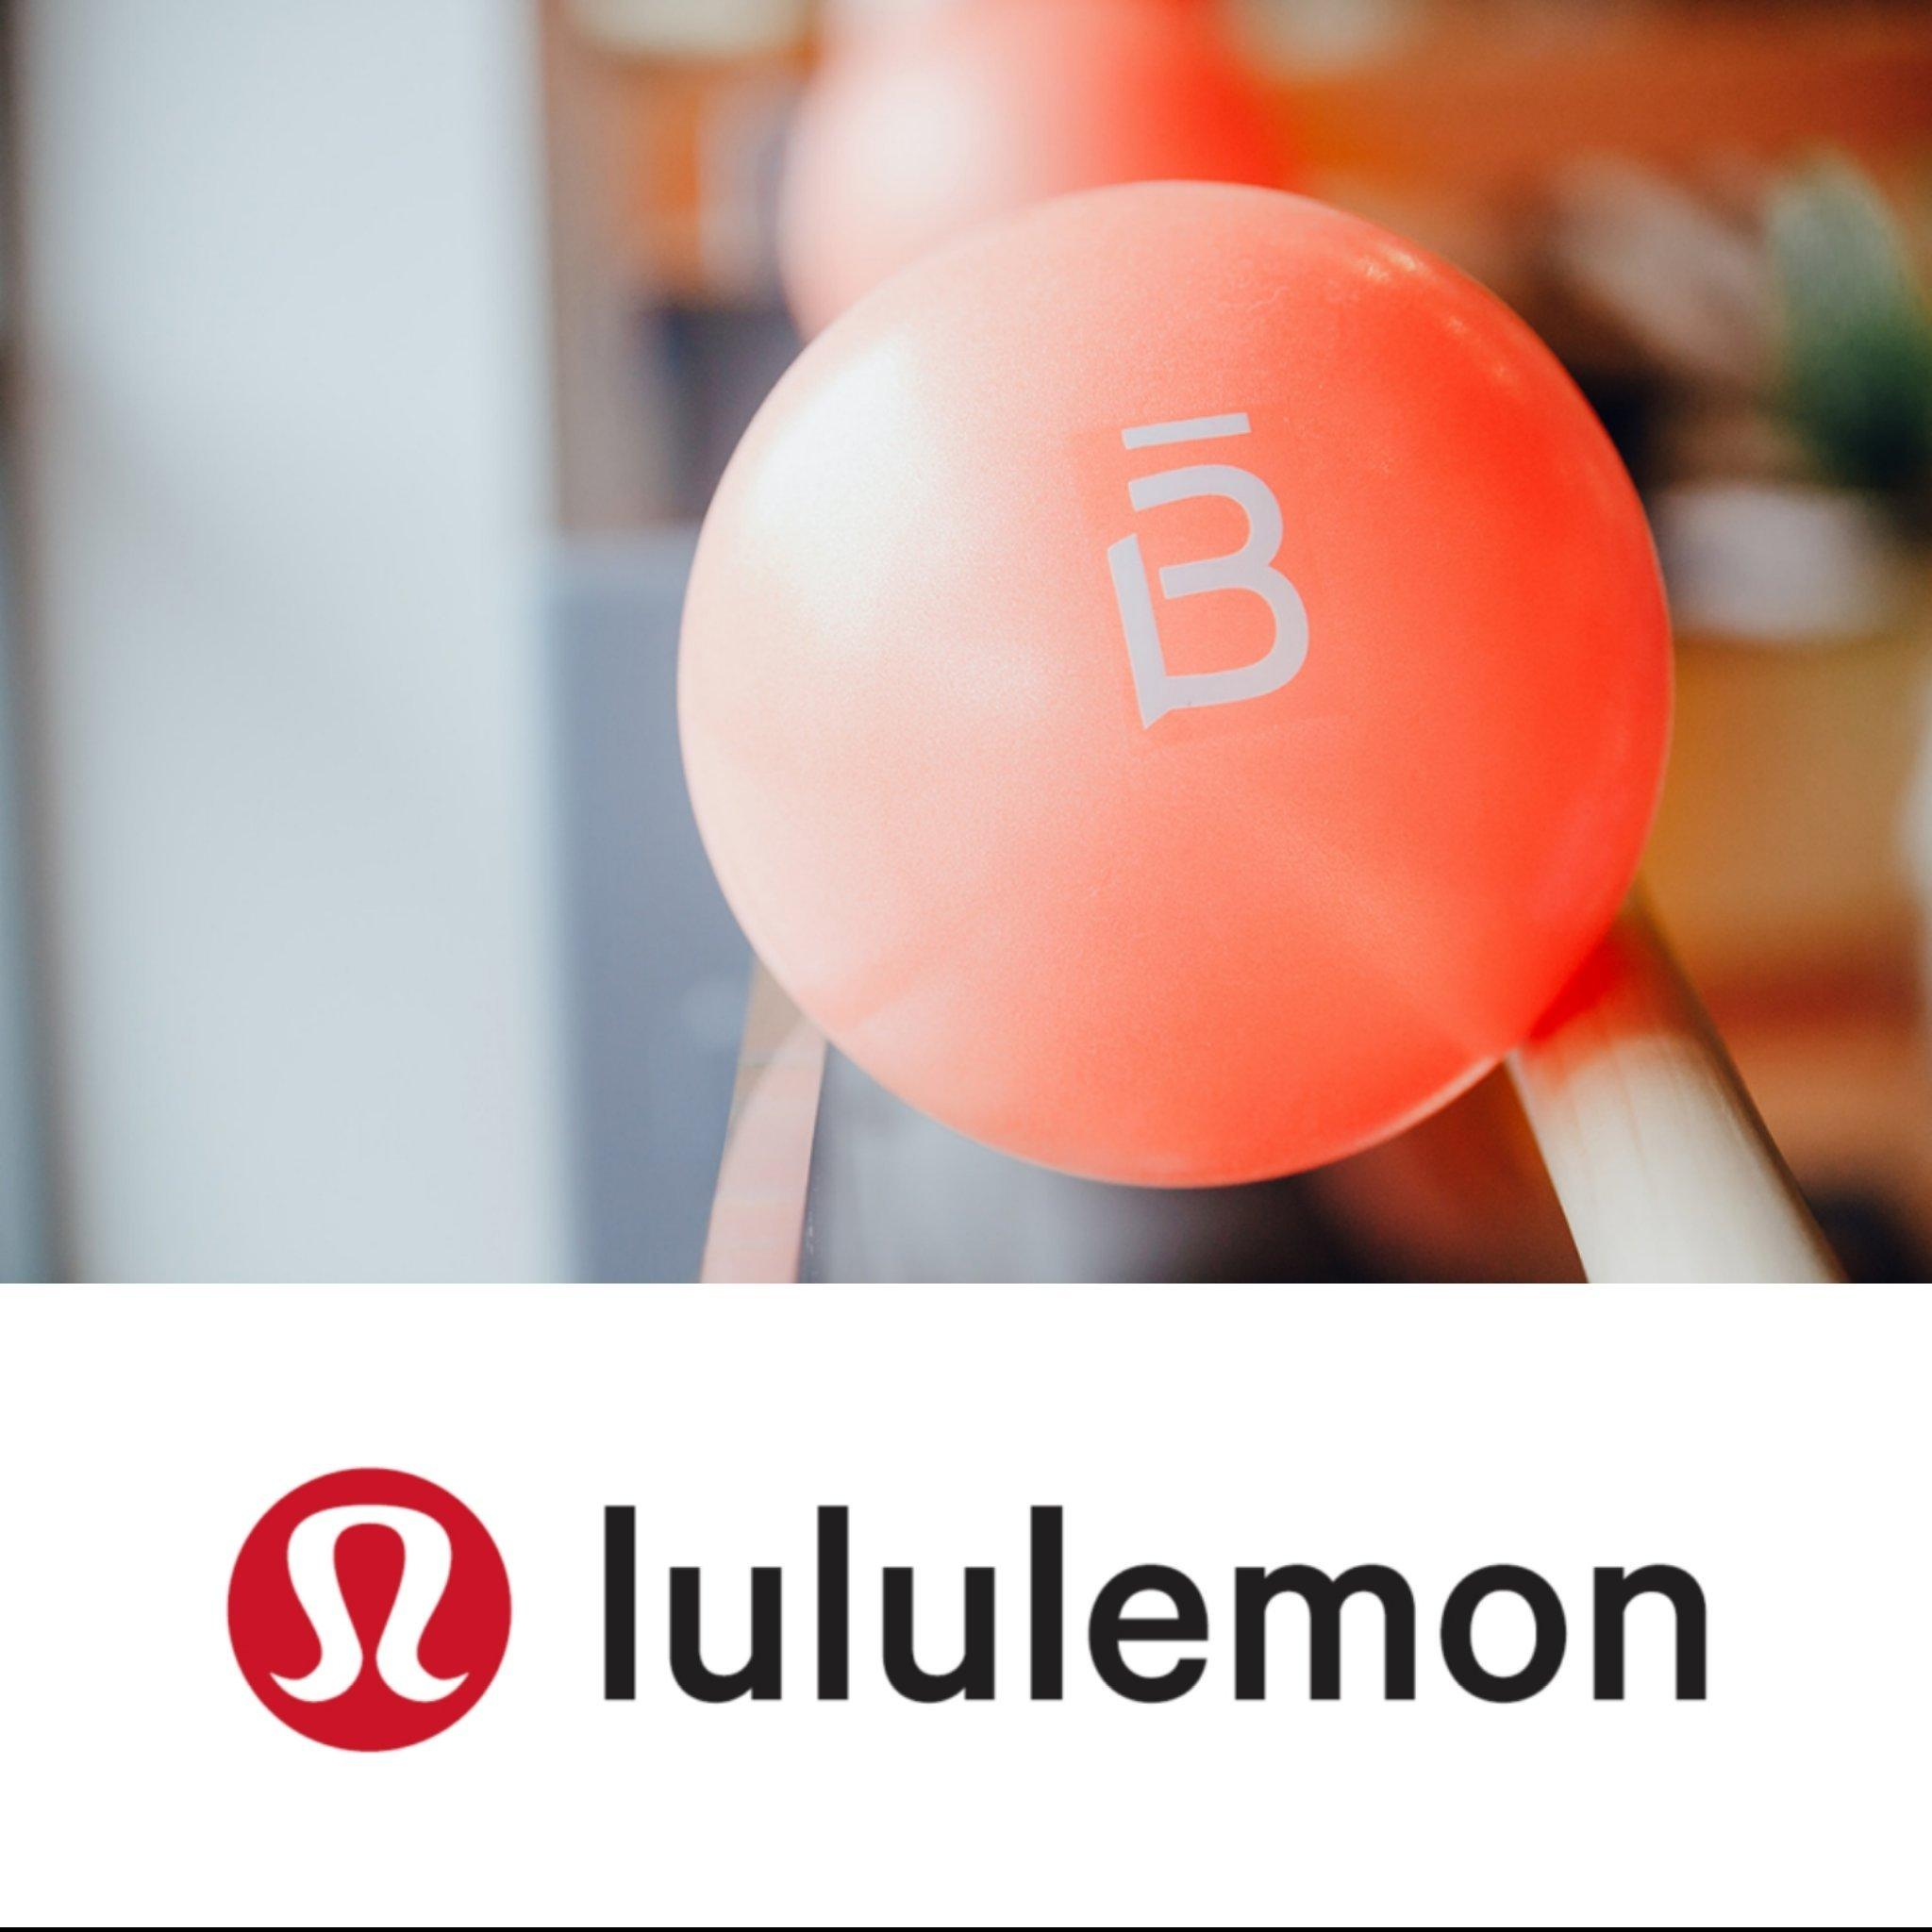 Eugene Barre3 + Lululemon Pop-Up